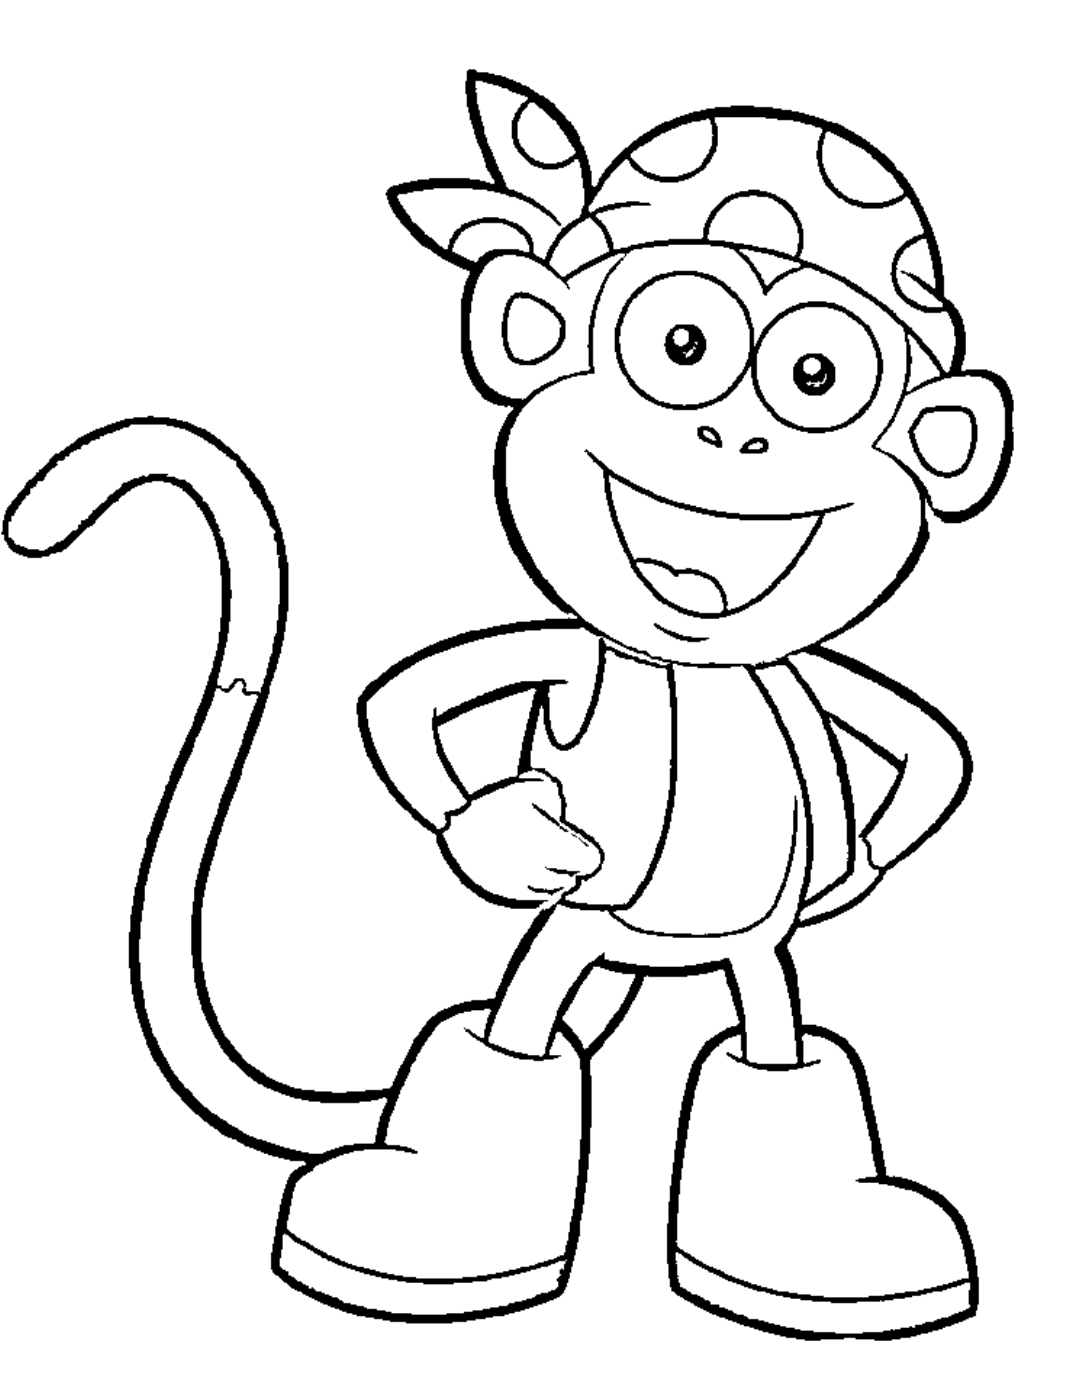 Unforgettable image regarding printable cartoon coloring pages